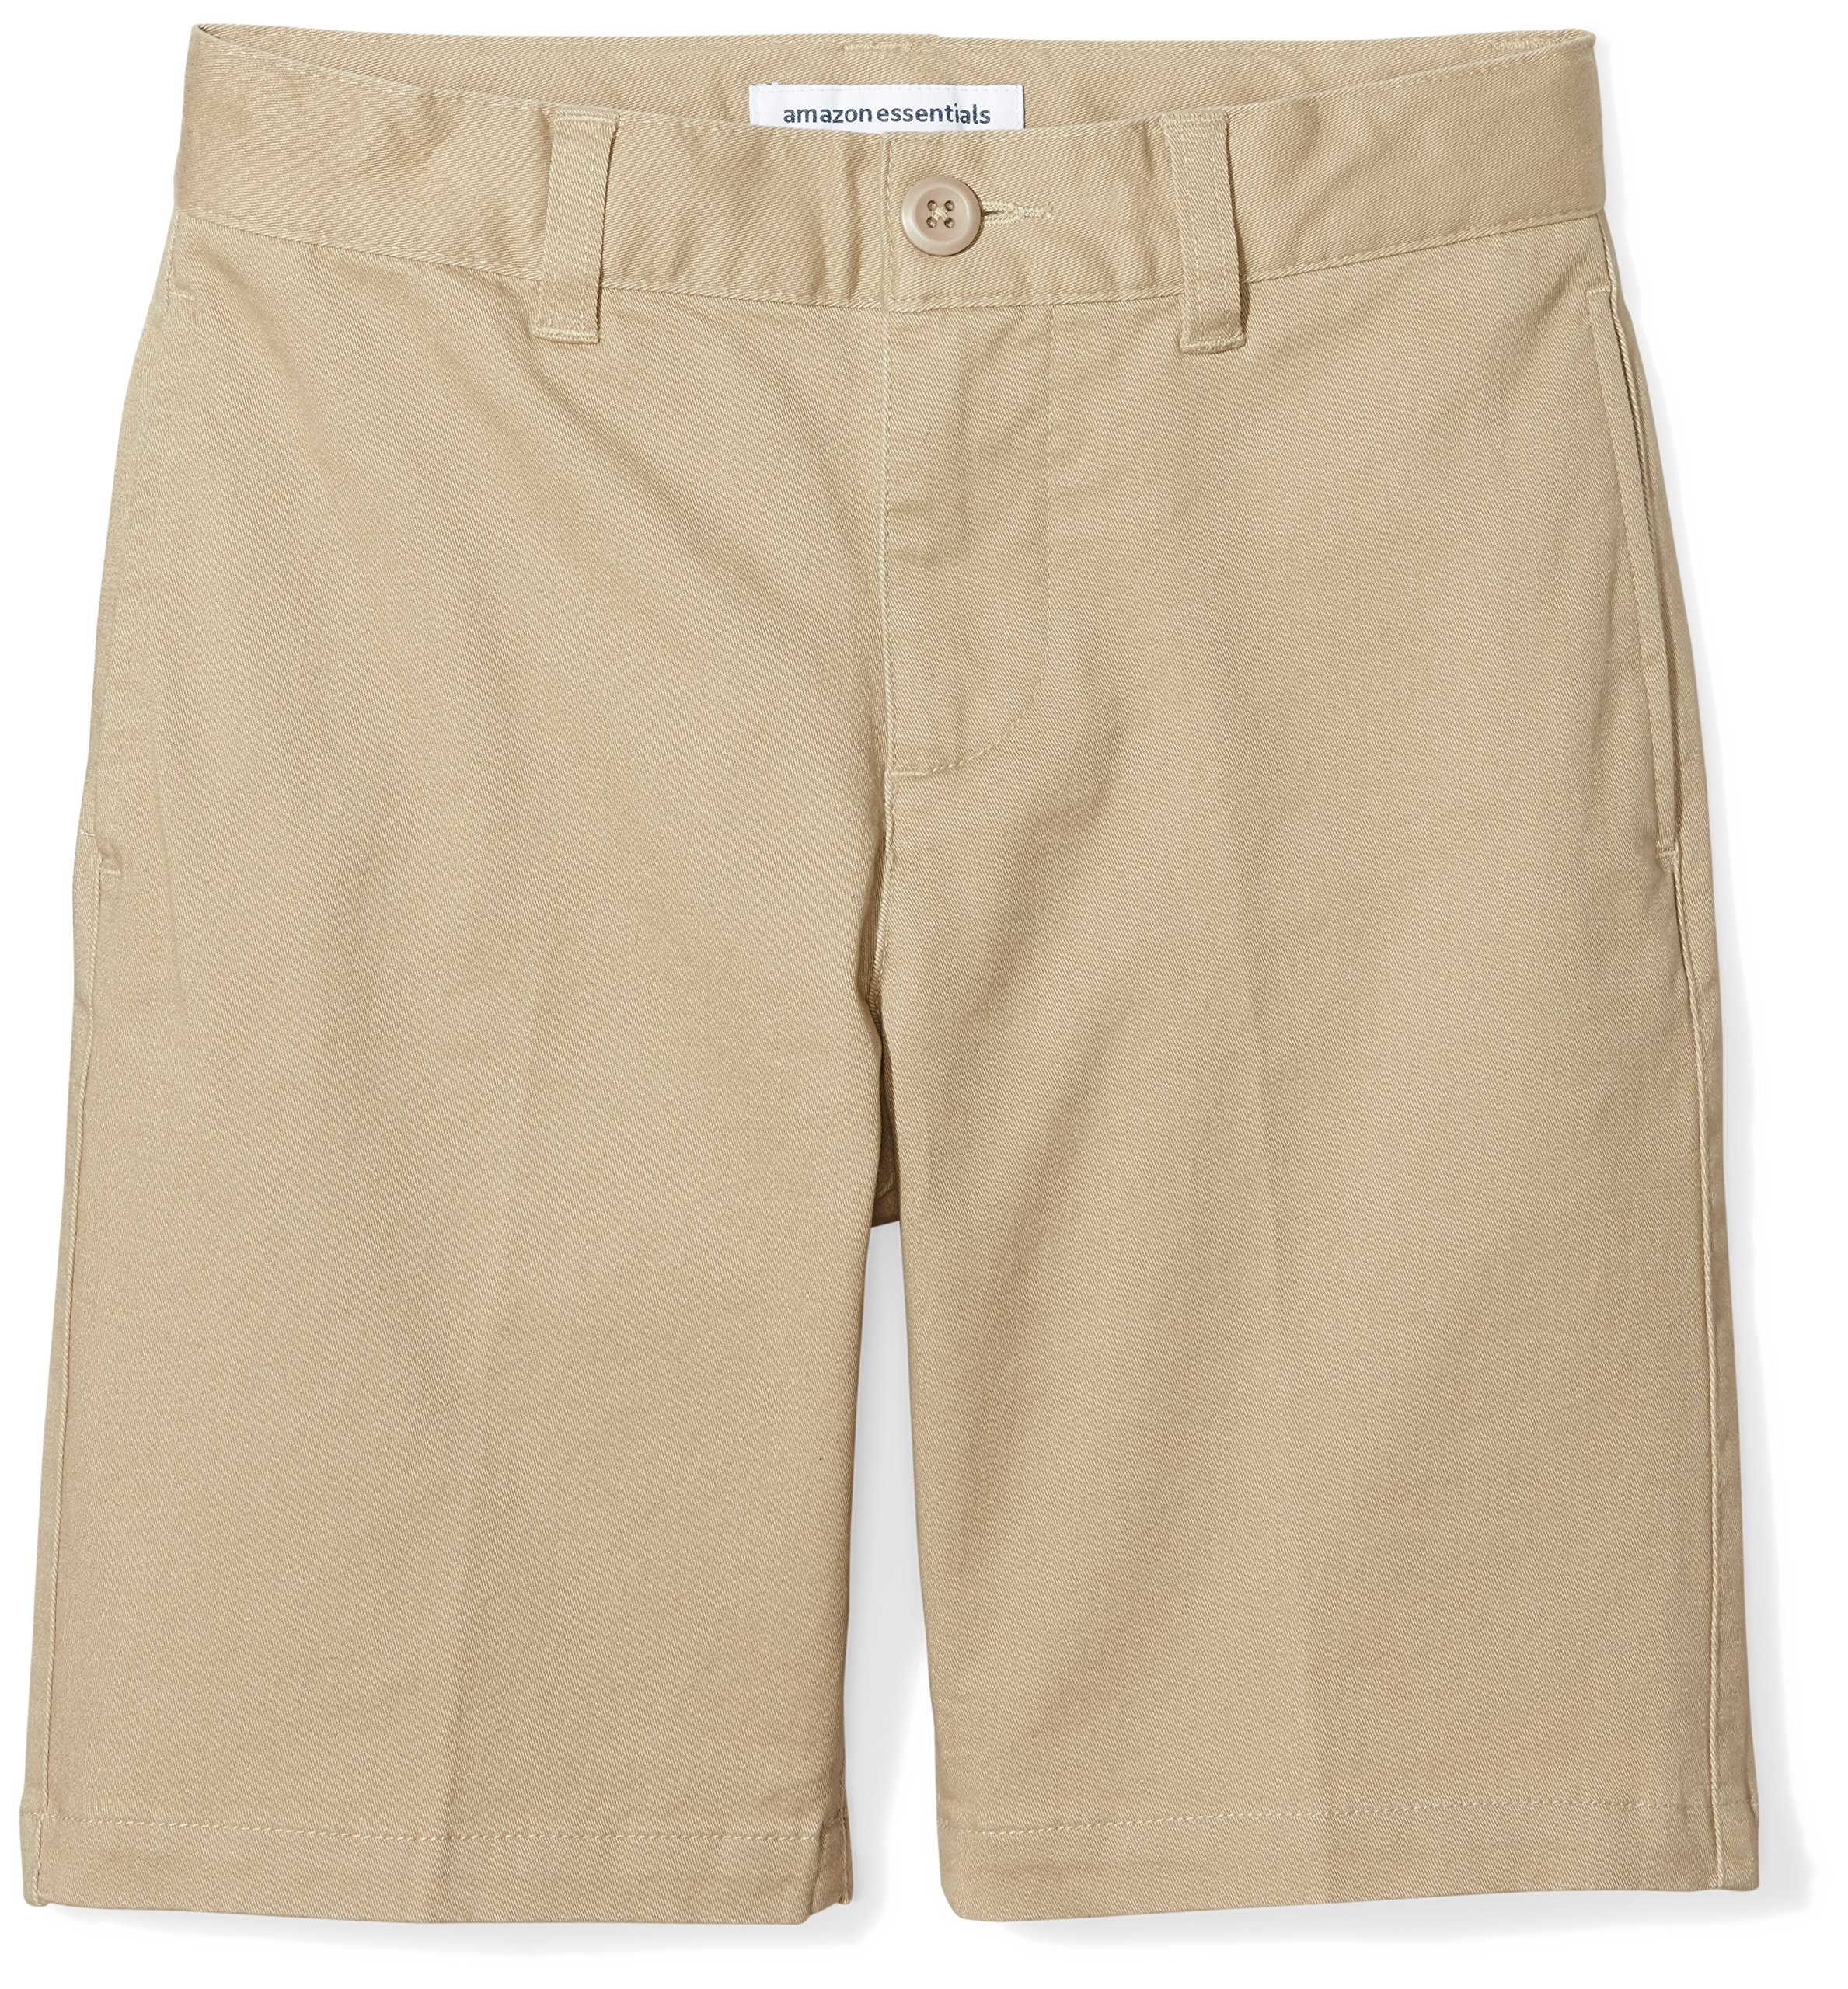 Amazon Essentials Big Boys' Flat Front Uniform Chino Short, Khaki,12